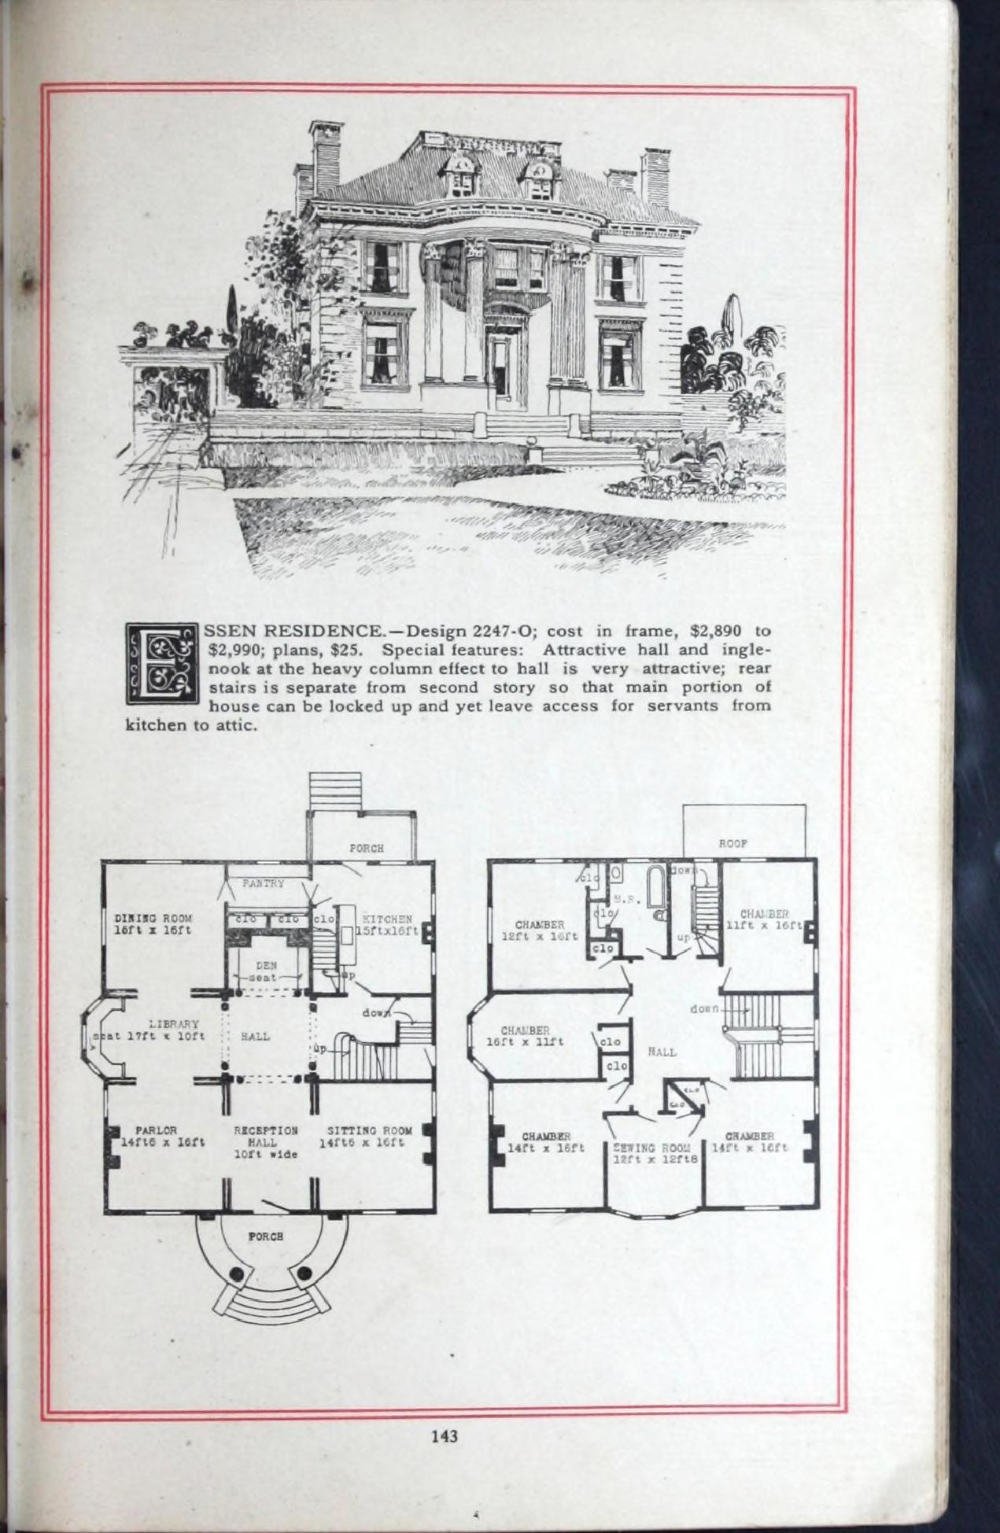 Artistic Homes Herbert C Chivers Architect Chivers Herbert C Free Download Borrow And Streaming Internet Archive Vintage House Plans How To Plan House Plans